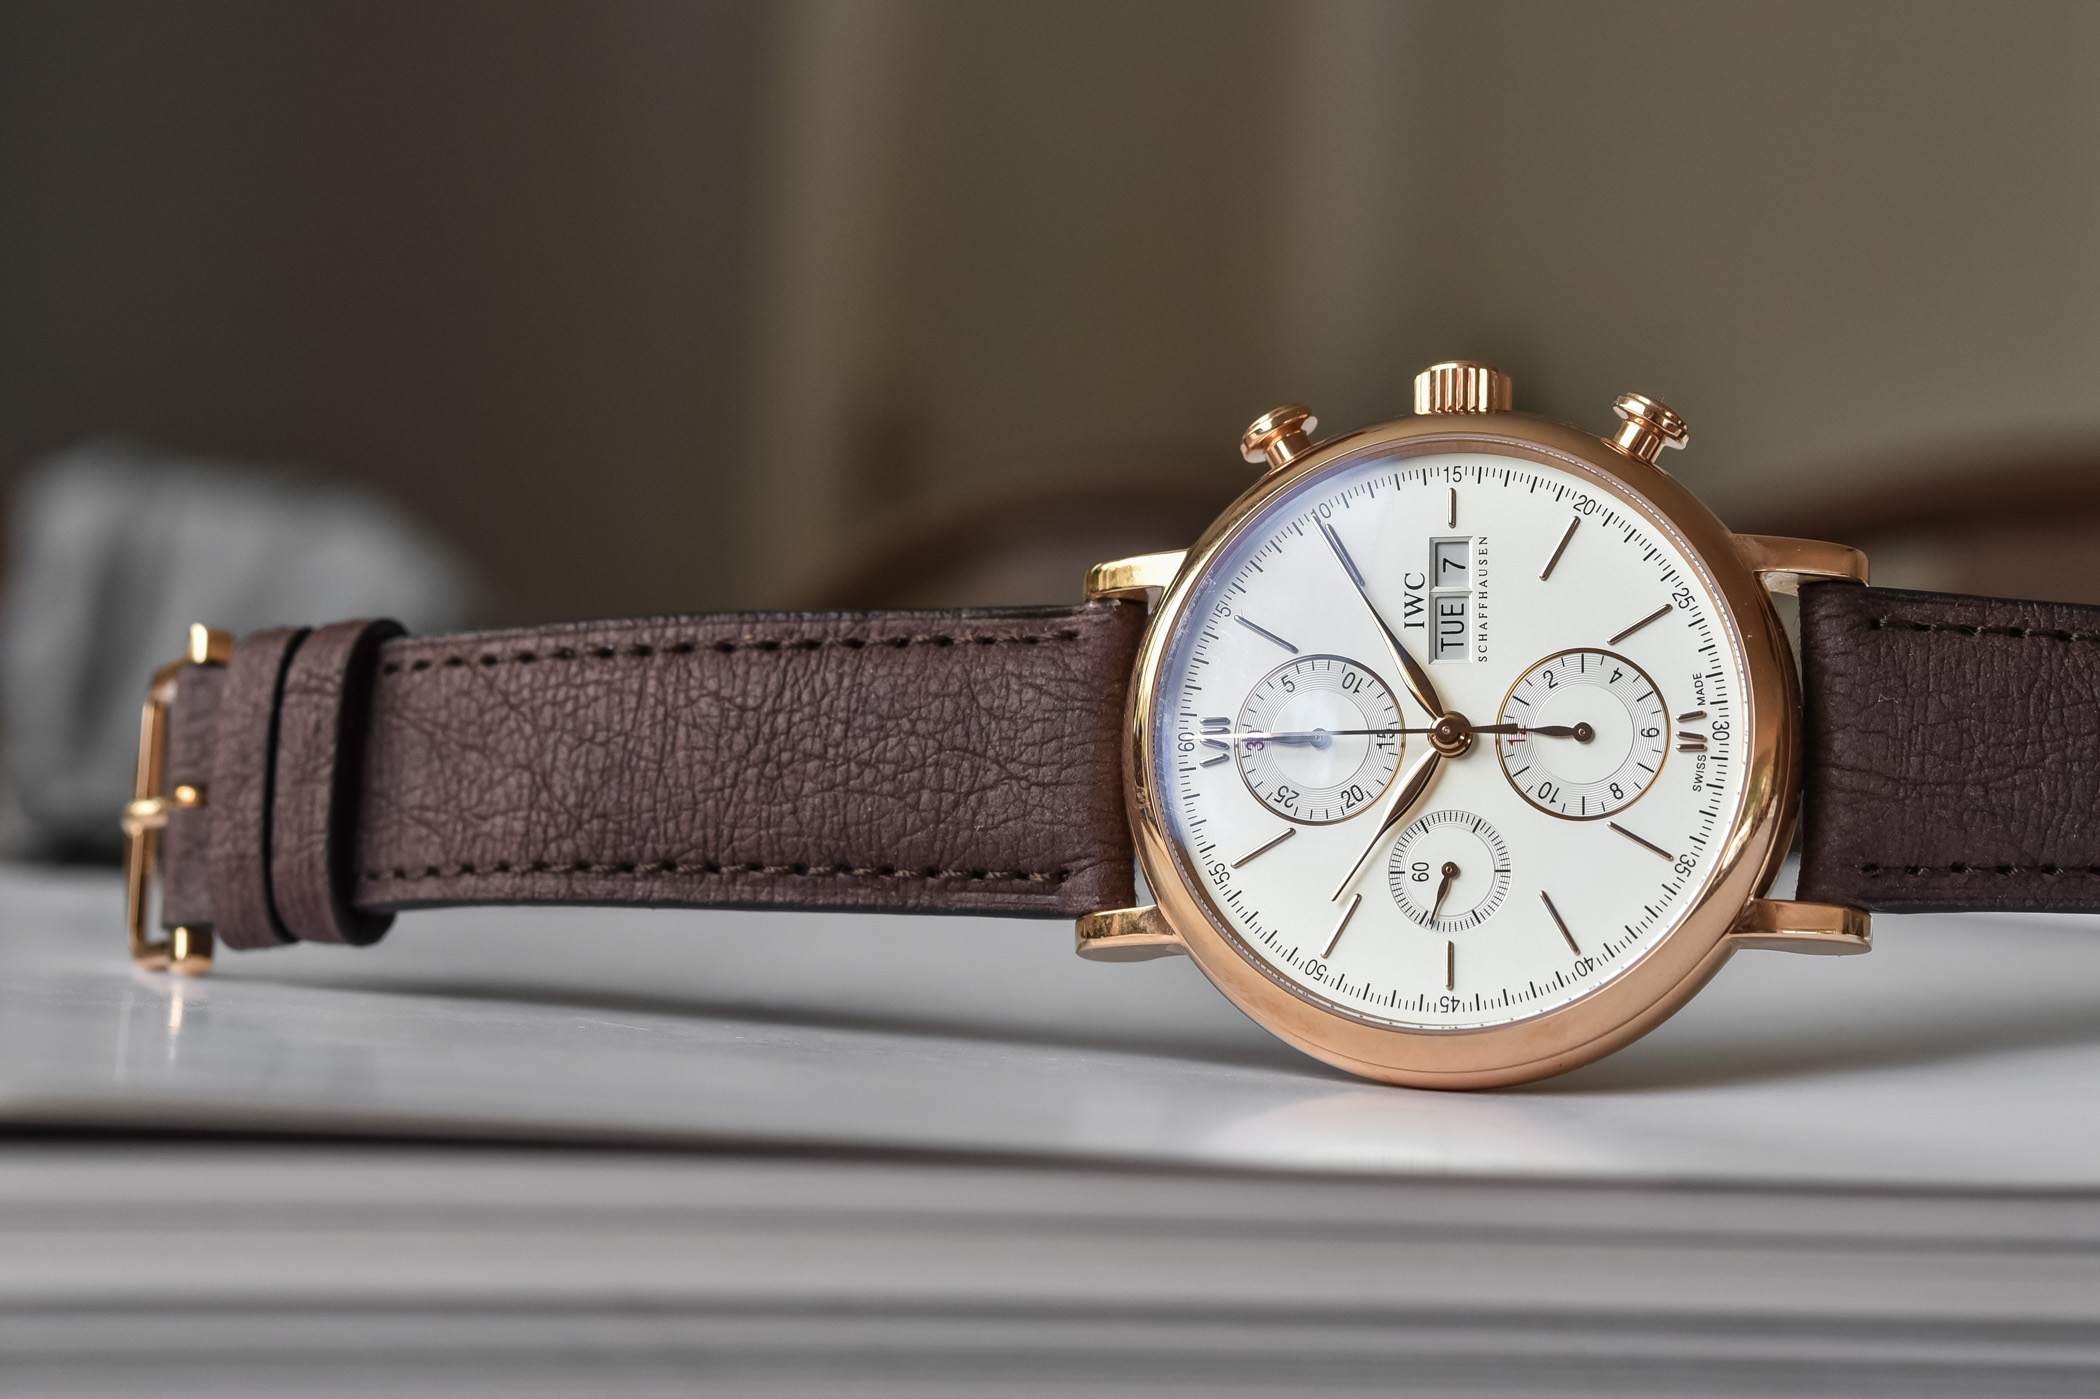 News - IWC Launches Low-Impact TimberTex Paper-Based Straps